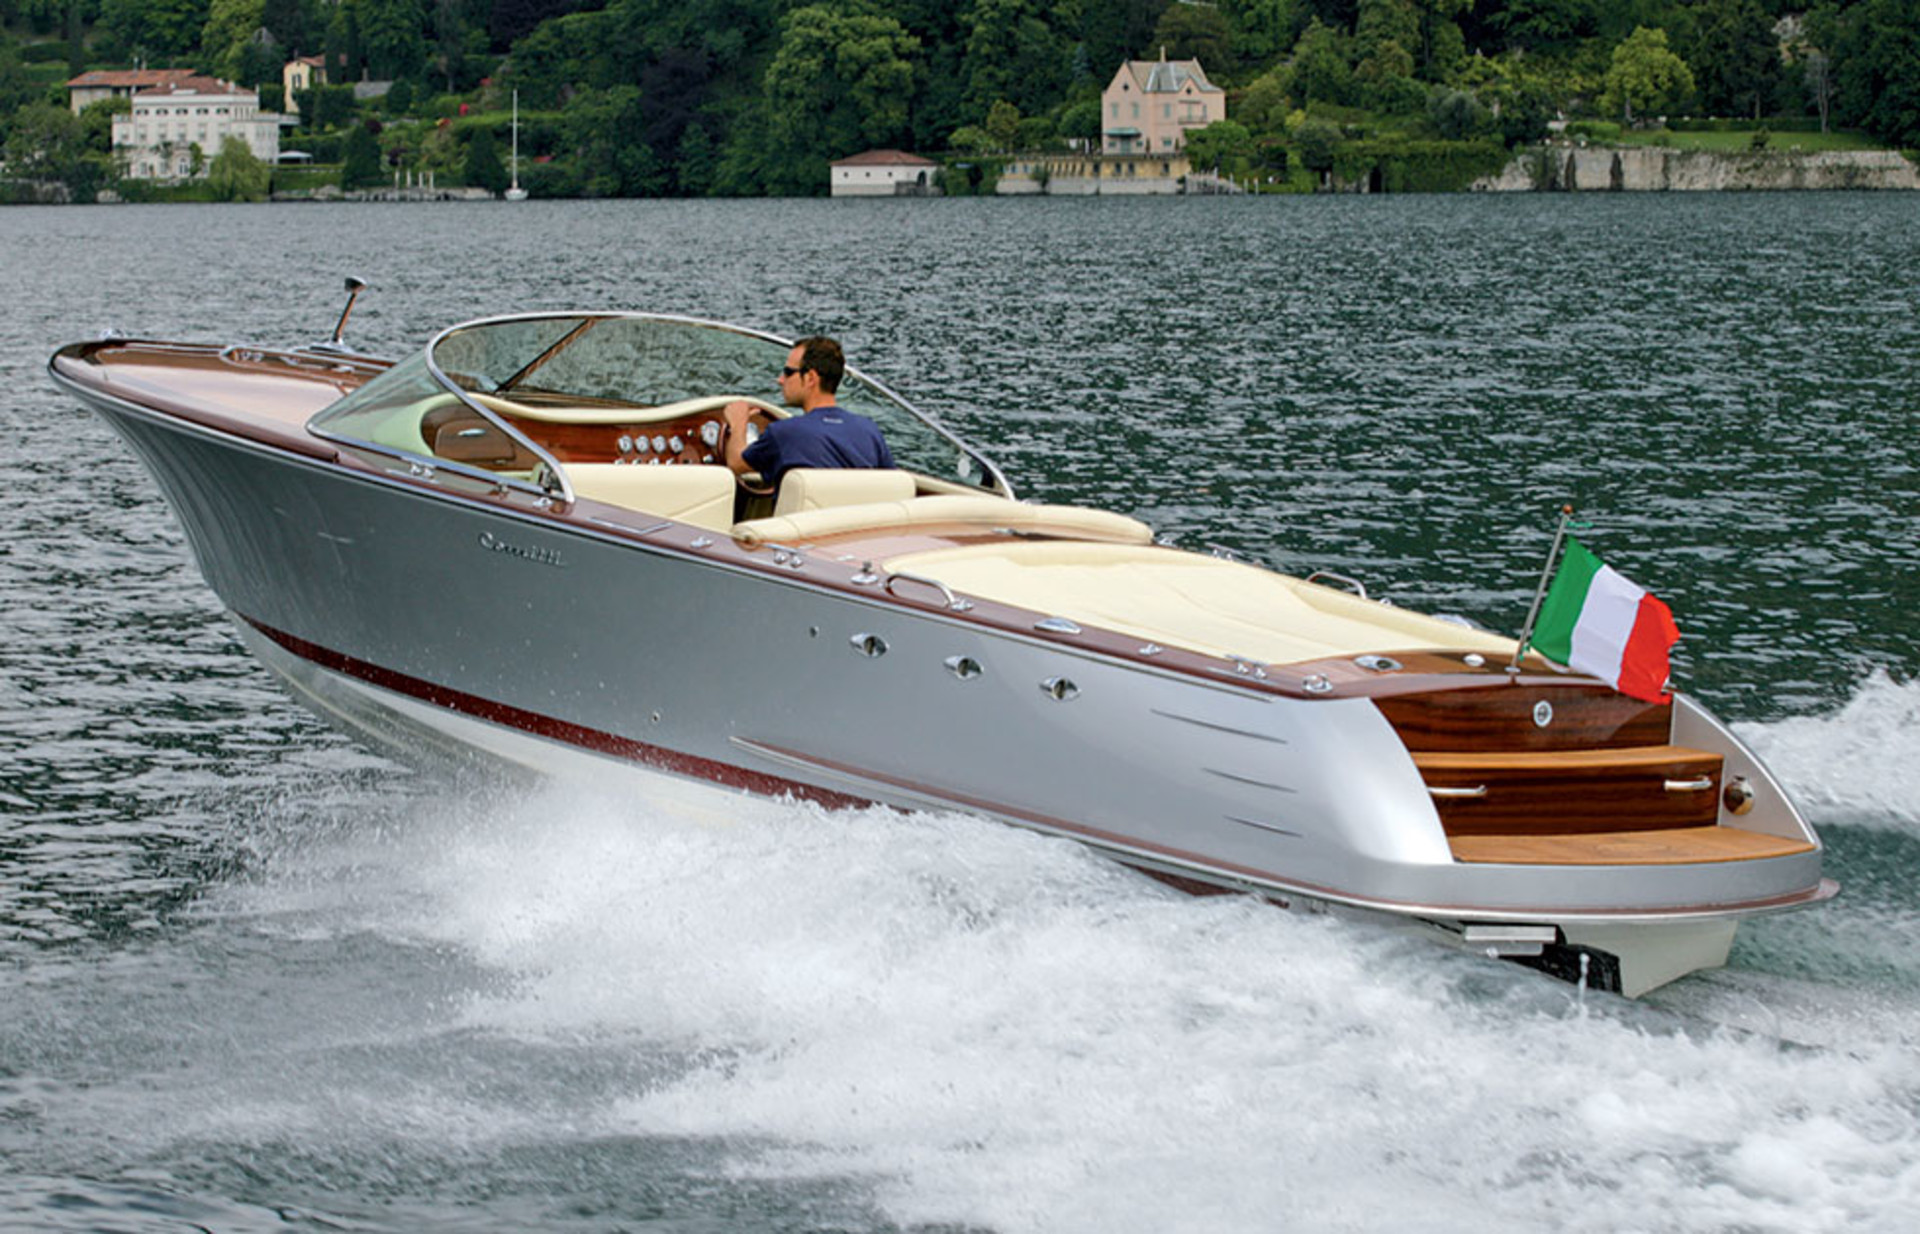 New Venezia 28 in Mahogany with Fiberglass Hull powered by 496 HO 425 HP